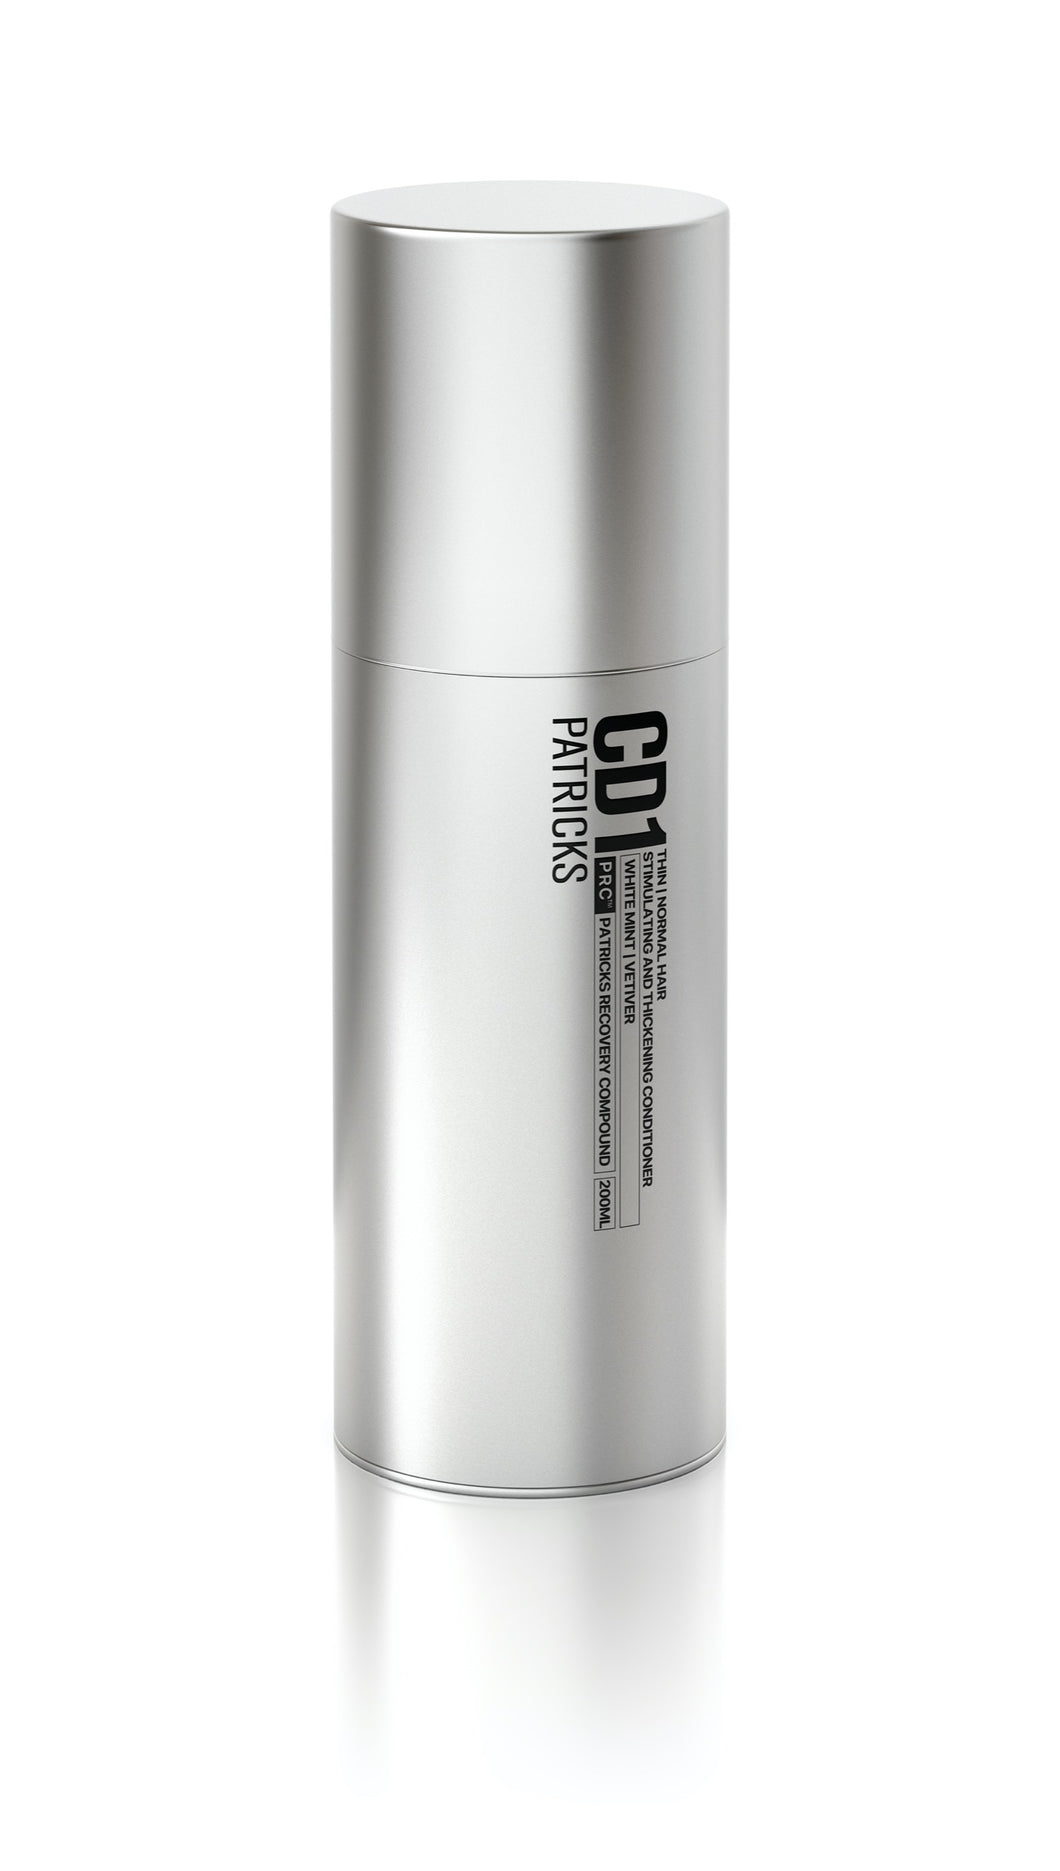 CD1 Daily Stimulating & Thickening Conditioner